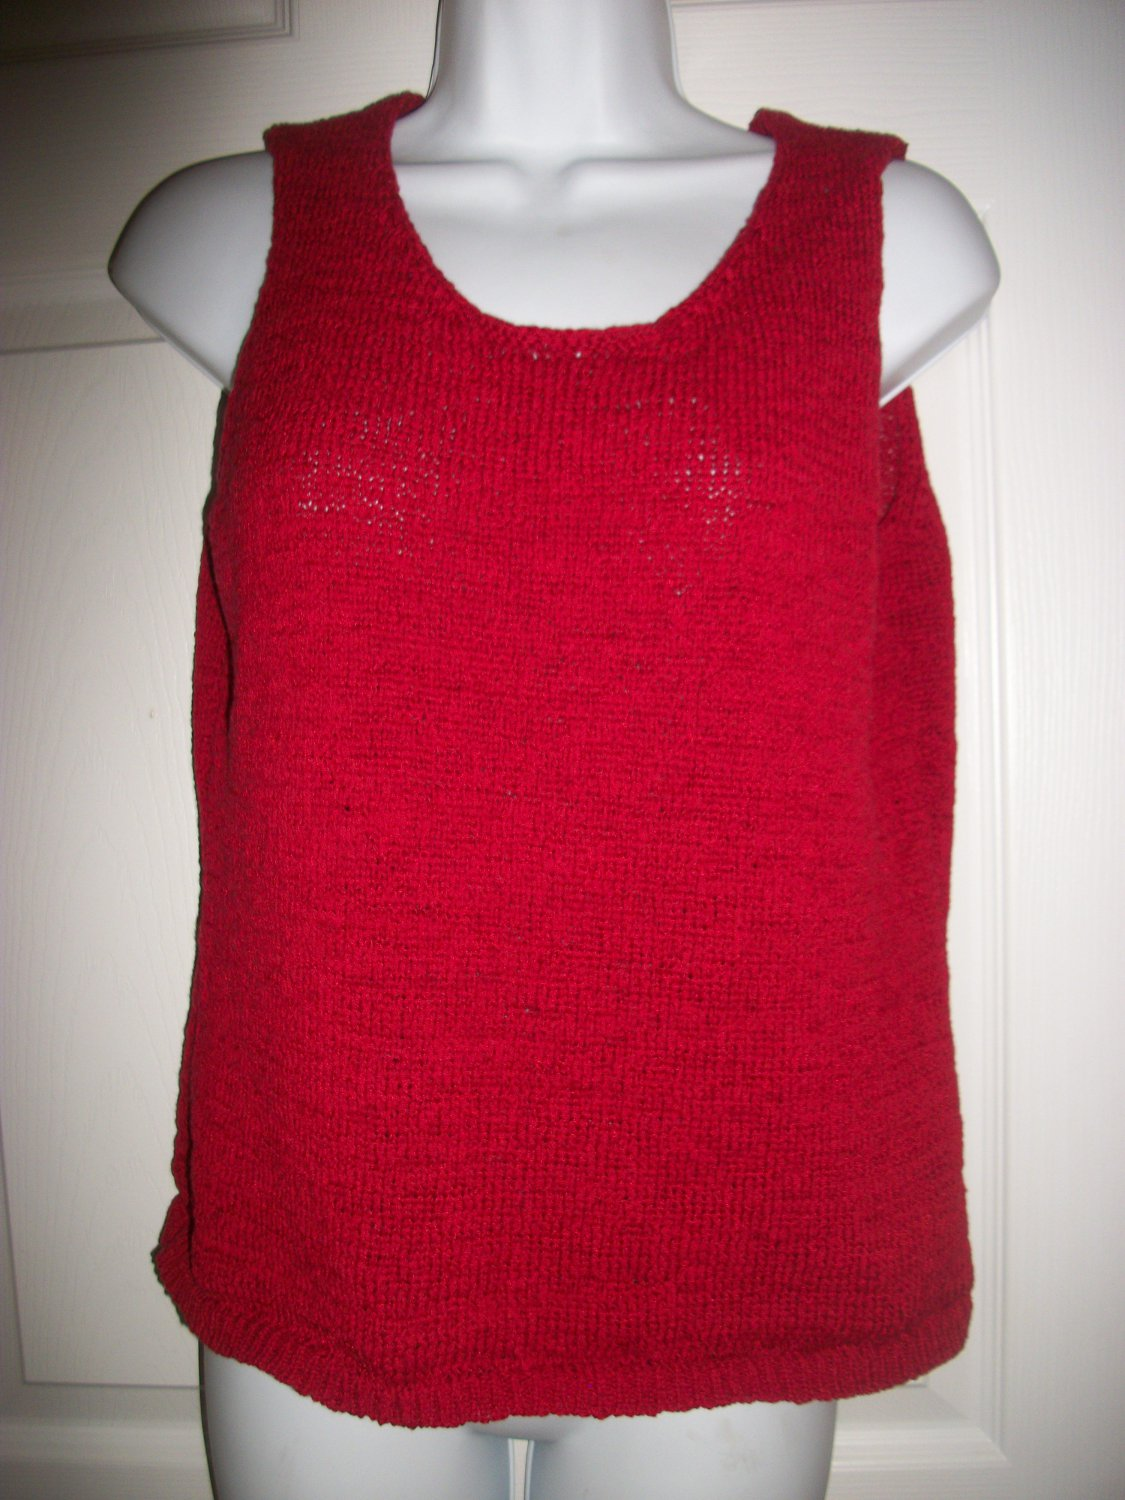 Coldwater Creek Women's Red Sleeveless Sweater Size M